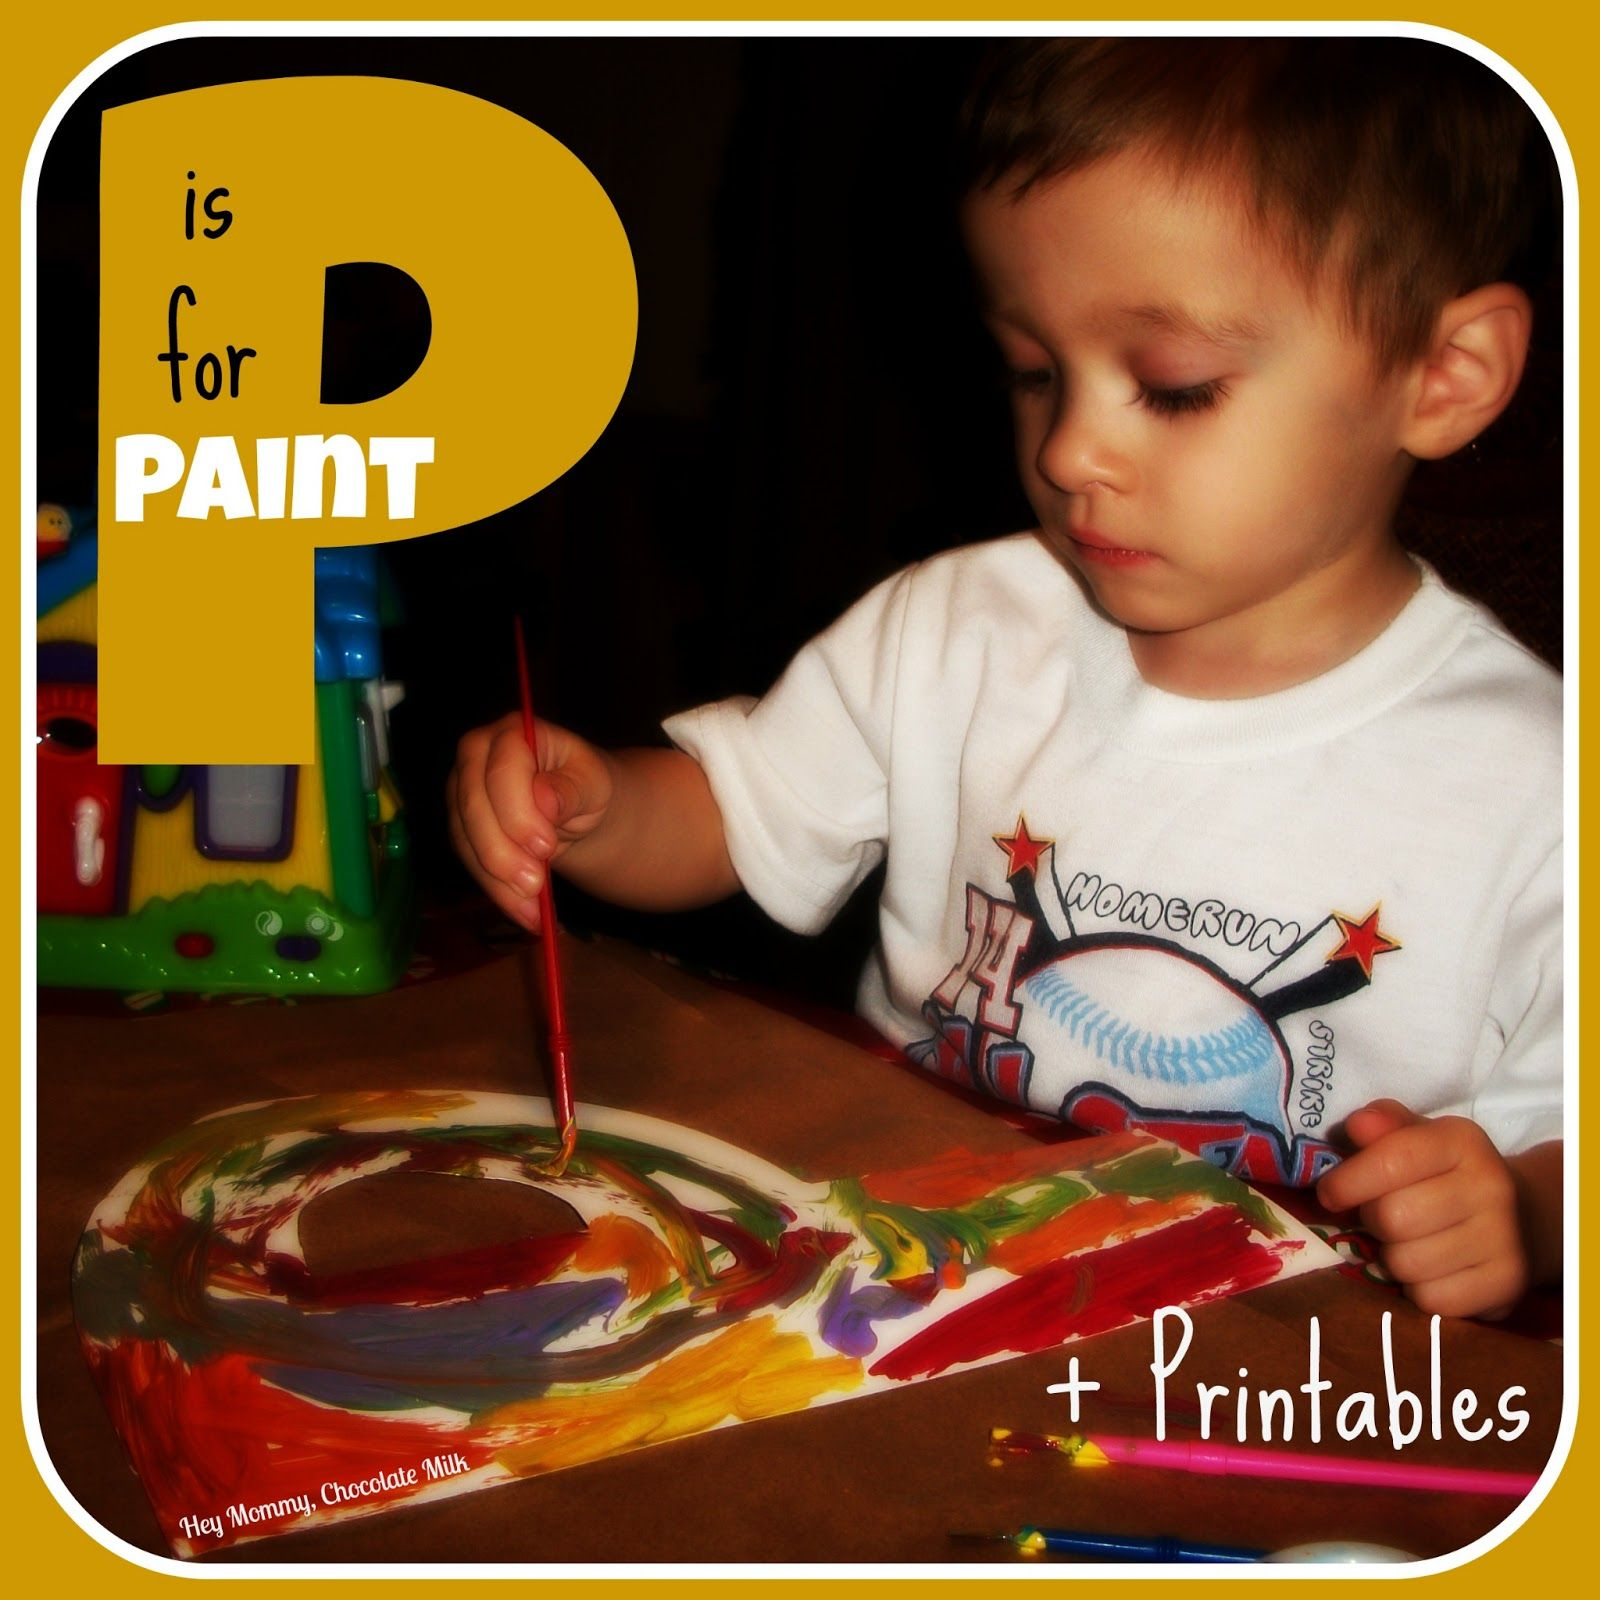 P is for Paint - Printables (Letter Recognition, Connect the Colors, Complete the Pattern, Trace the Line). Pinned by Generation iKid.